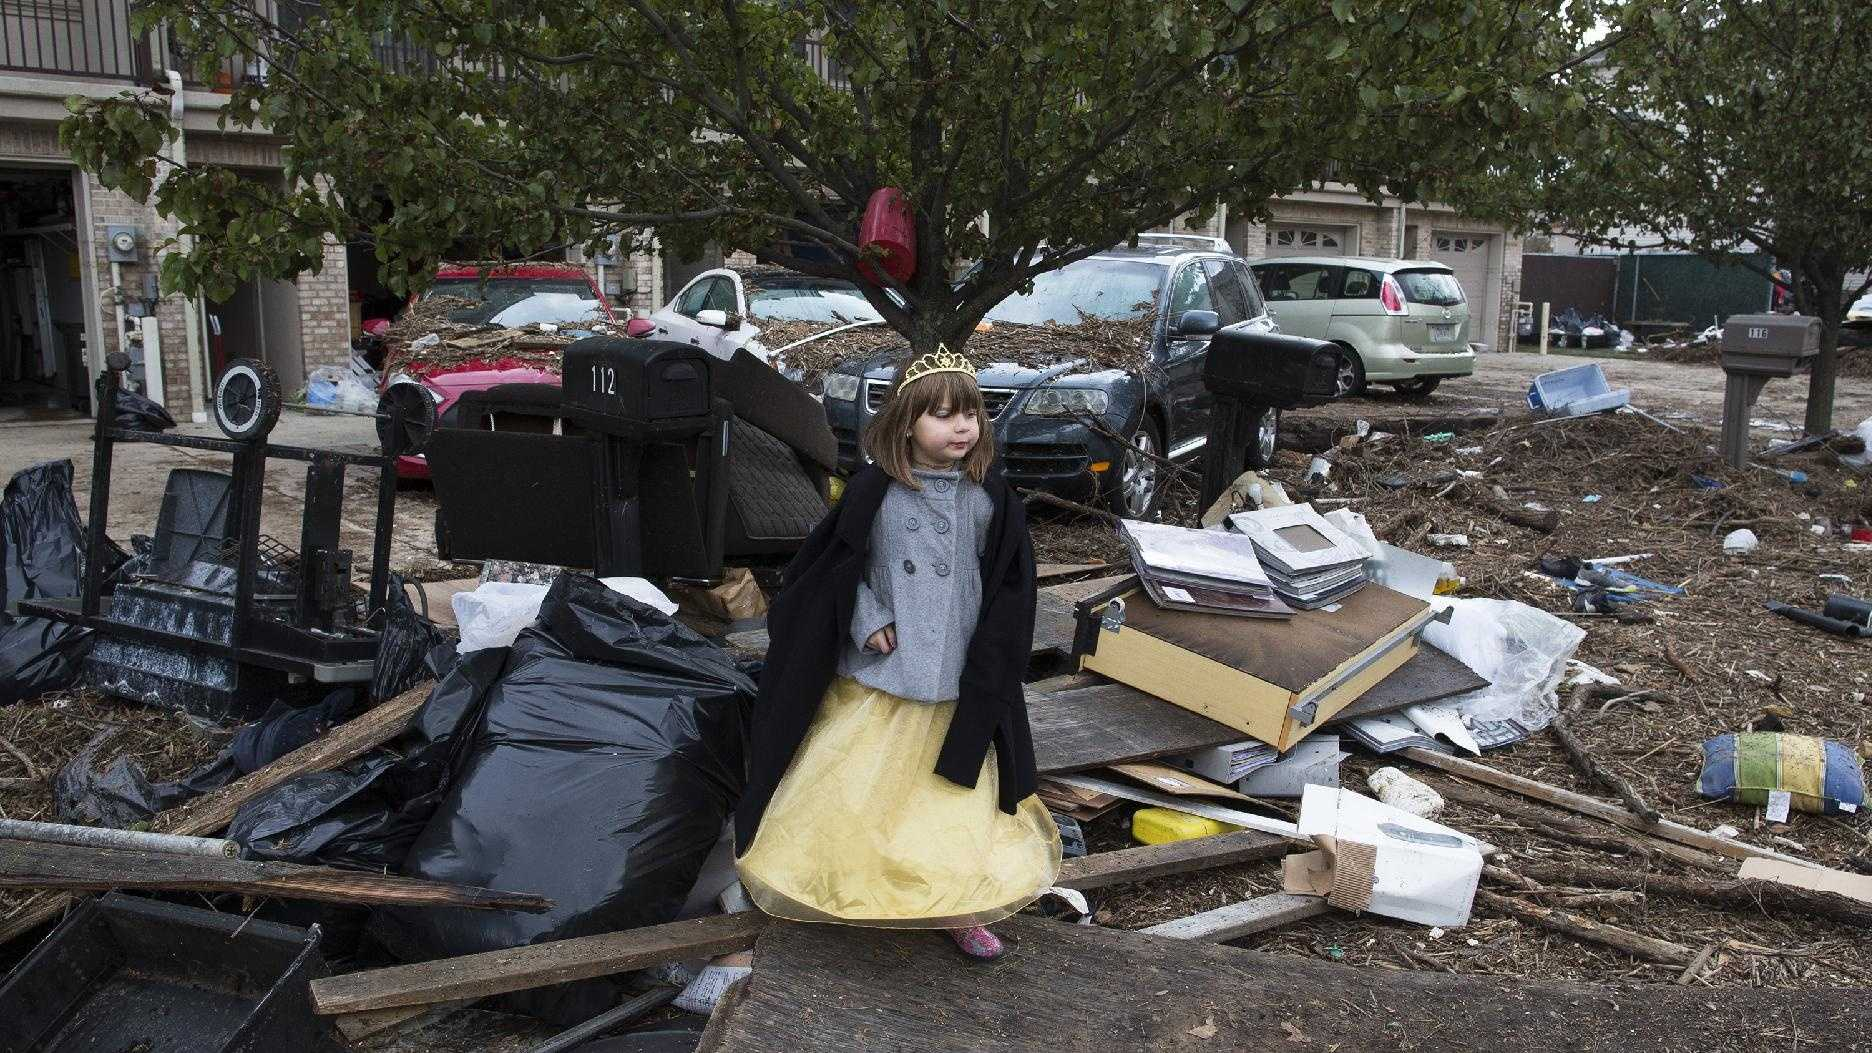 Lisa Kravchenko, of Staten Island, stands amongst flood debris in her princess Halloween costume, Wednesday, Oct. 31, 2012, in the Staten Island borough of New York.